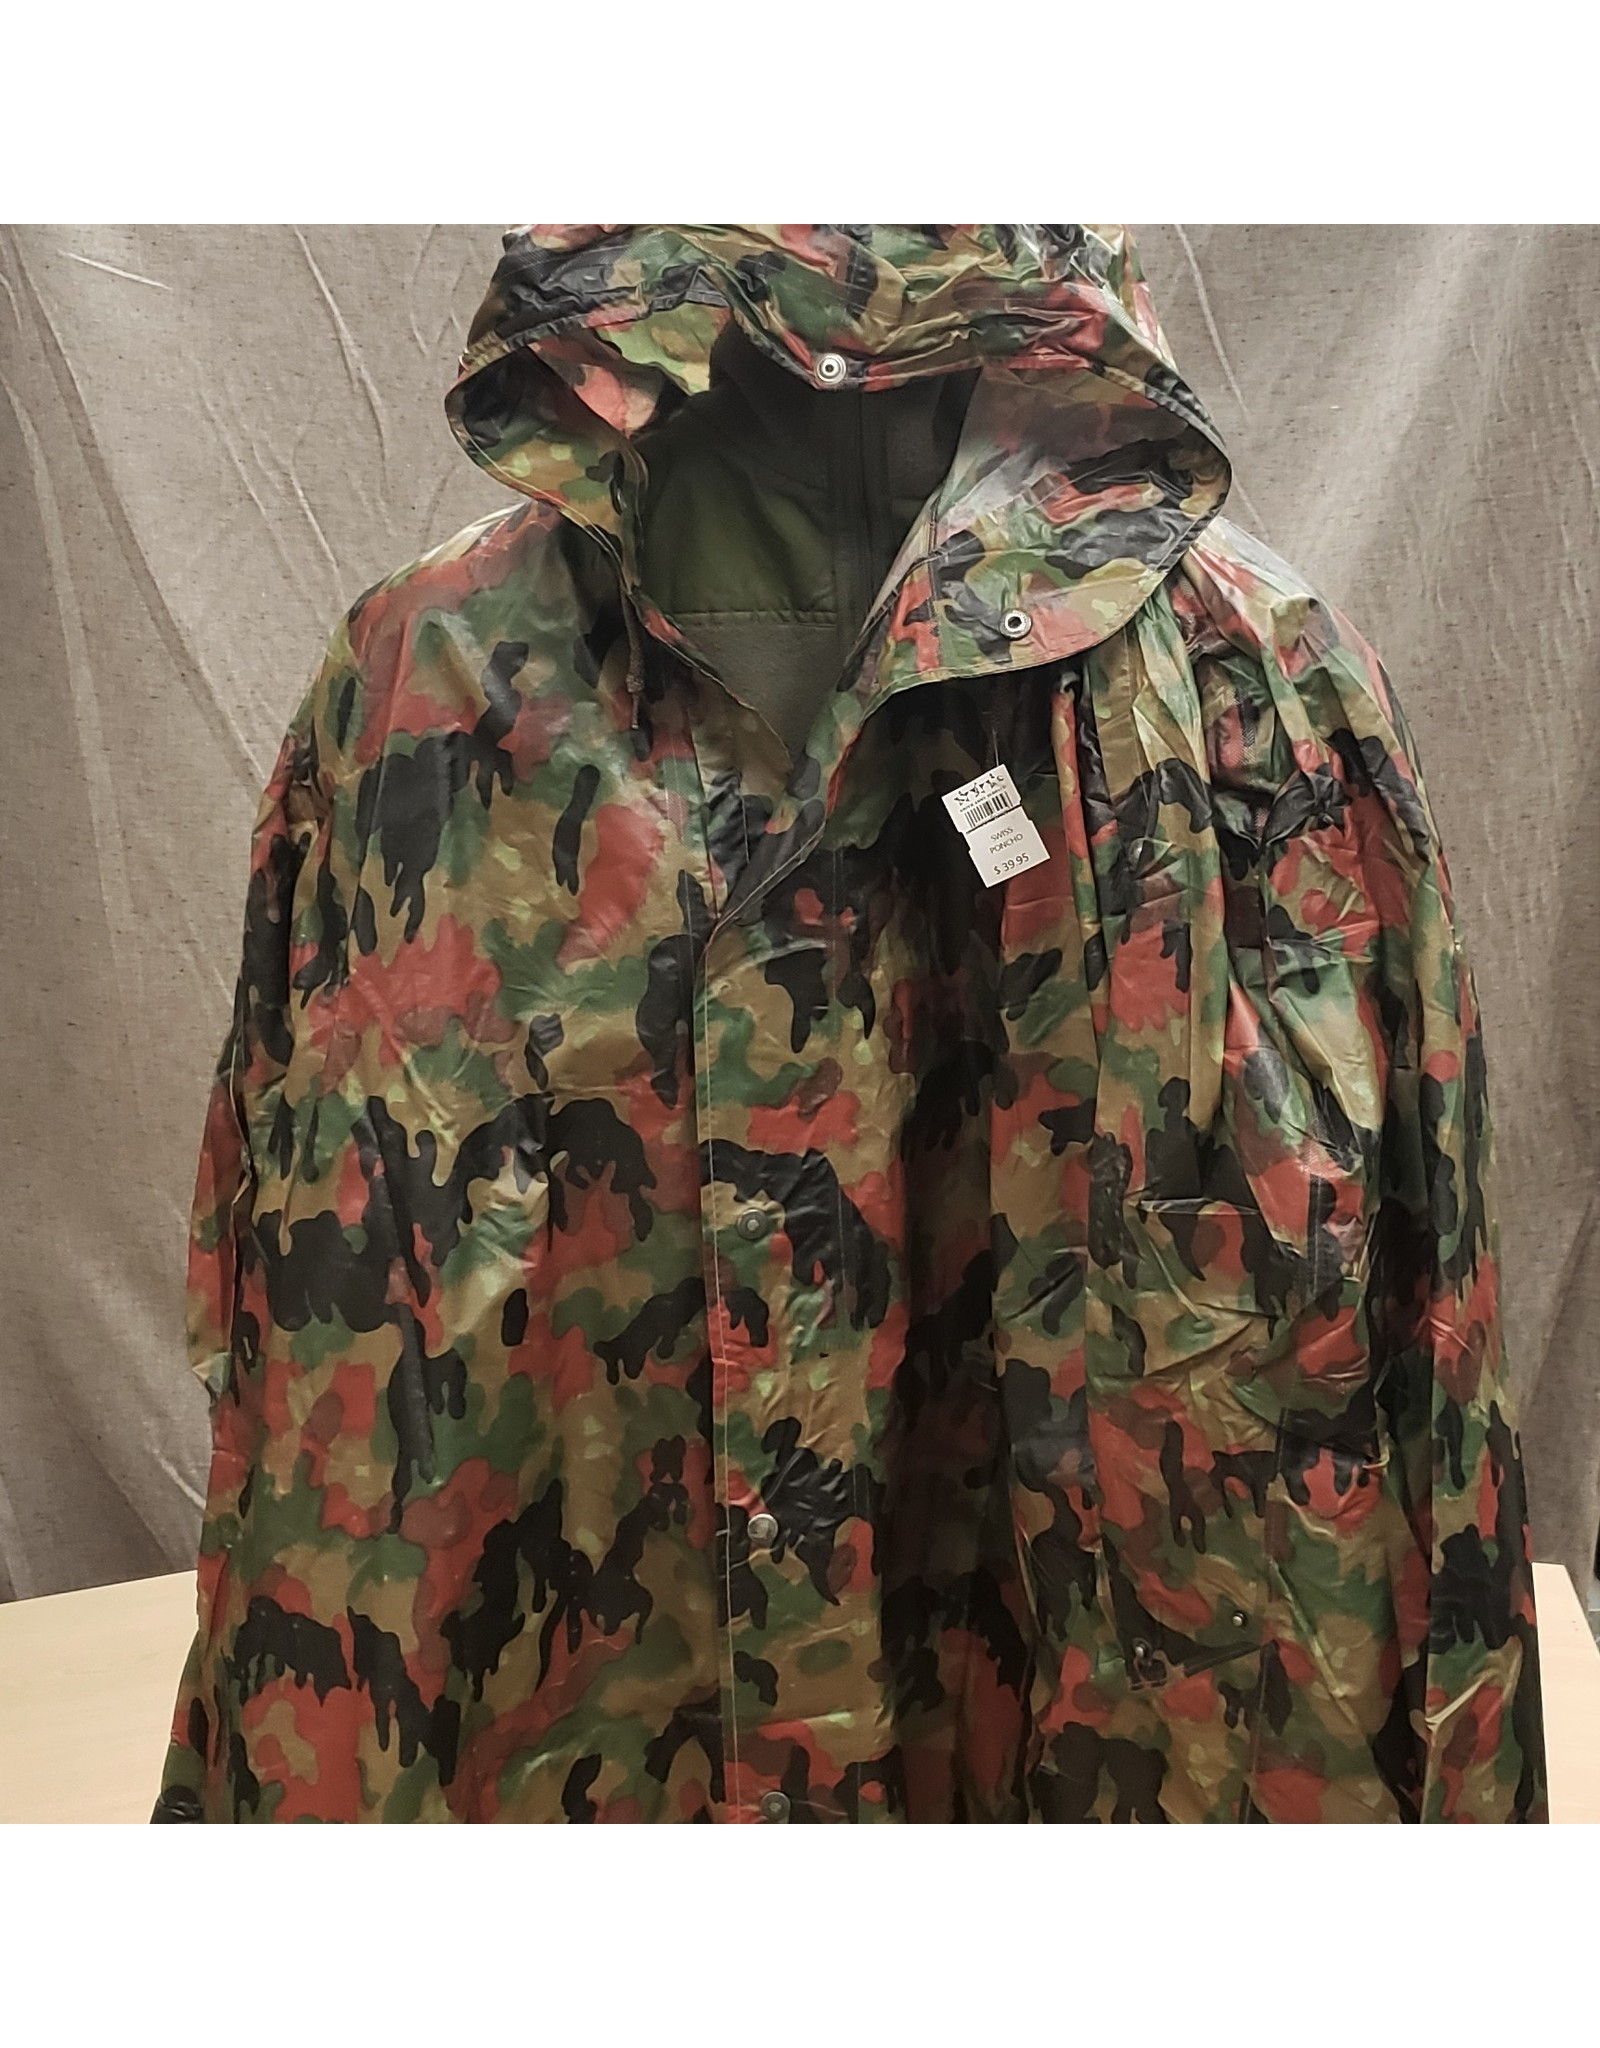 MAJOR SURPLUS SWISS MILITARY ALPENFLAGE CAMO PONCHO- USED